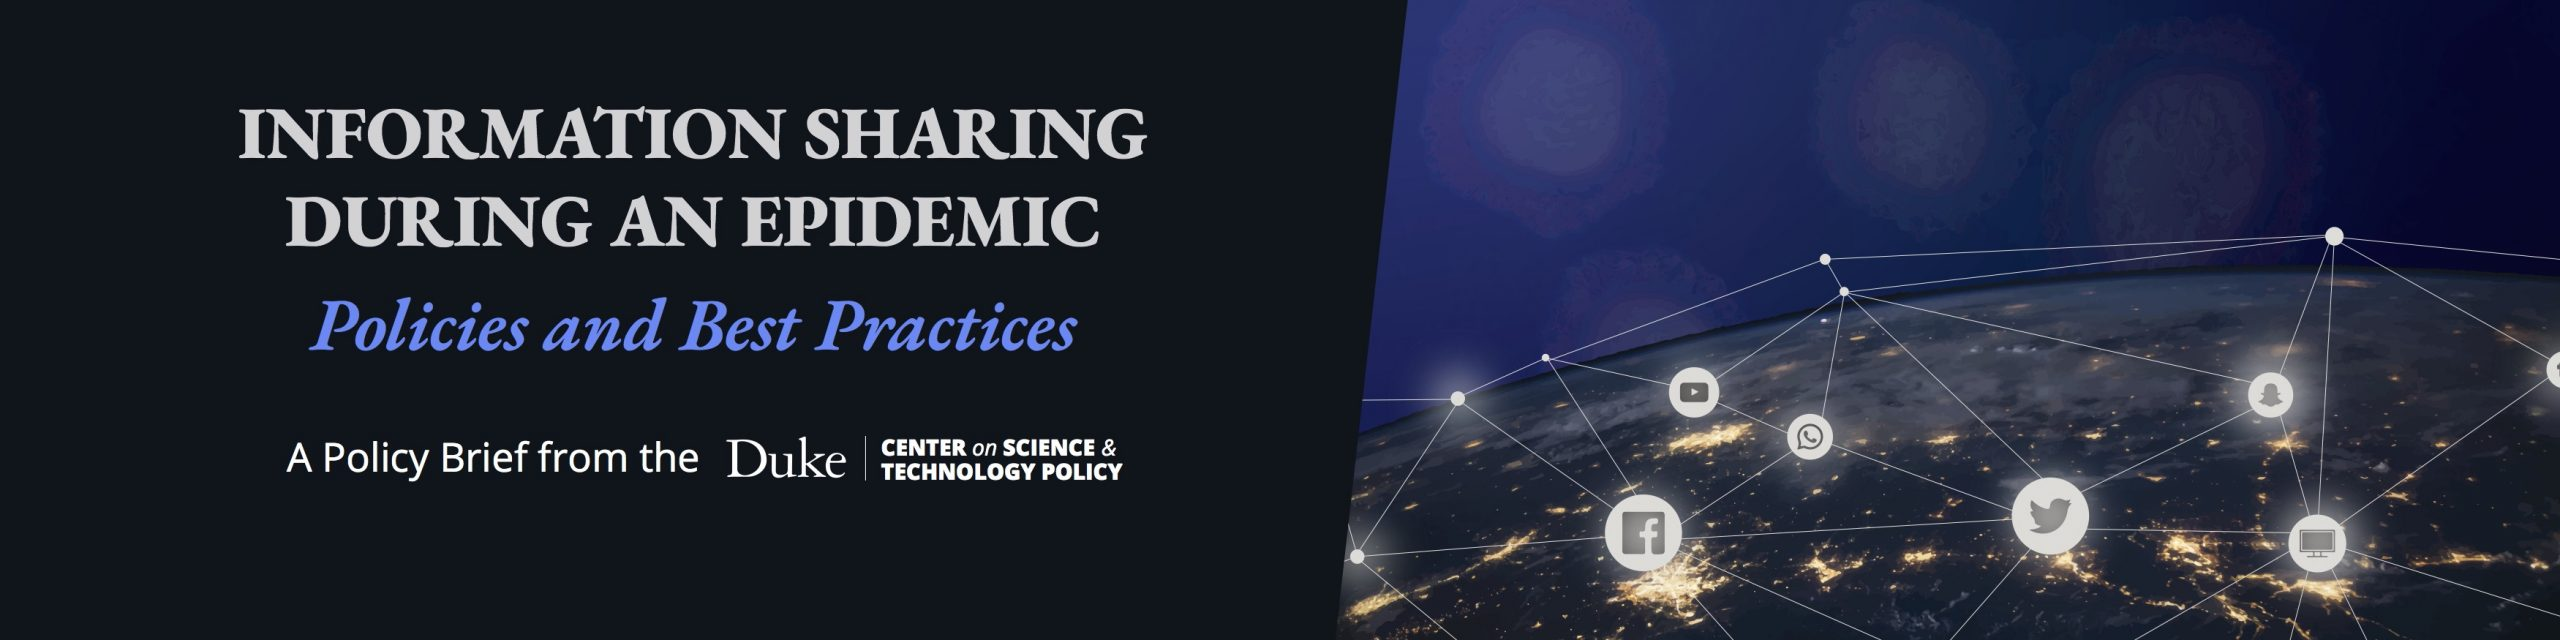 Information Sharing during an Epidemic. Policies and Best Practices. A policy brief from the Duke Center on Science & Technology Policy